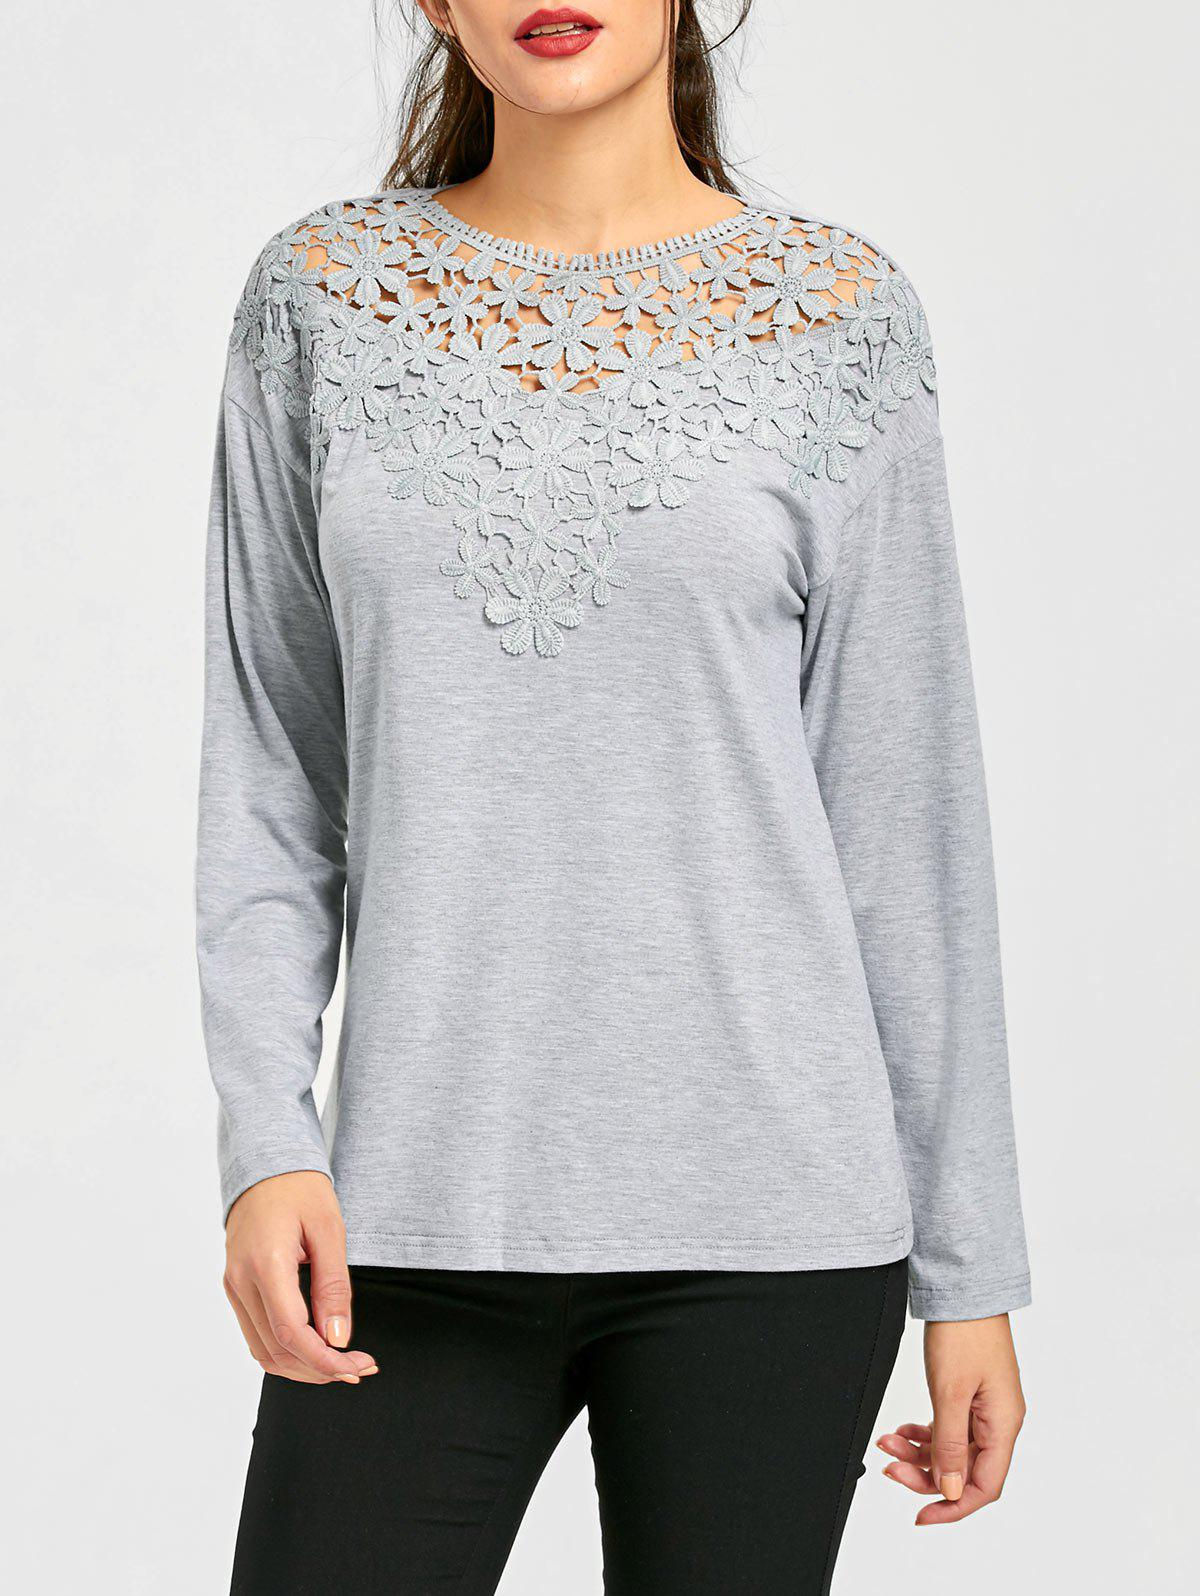 Lace Panel Cutwork Marled TopWOMEN<br><br>Size: M; Color: GRAY; Material: Rayon,Spandex; Shirt Length: Regular; Sleeve Length: Full; Collar: Crew Neck; Style: Casual; Embellishment: Lace; Pattern Type: Floral; Season: Fall,Spring; Weight: 0.2700kg; Package Contents: 1 x Top;